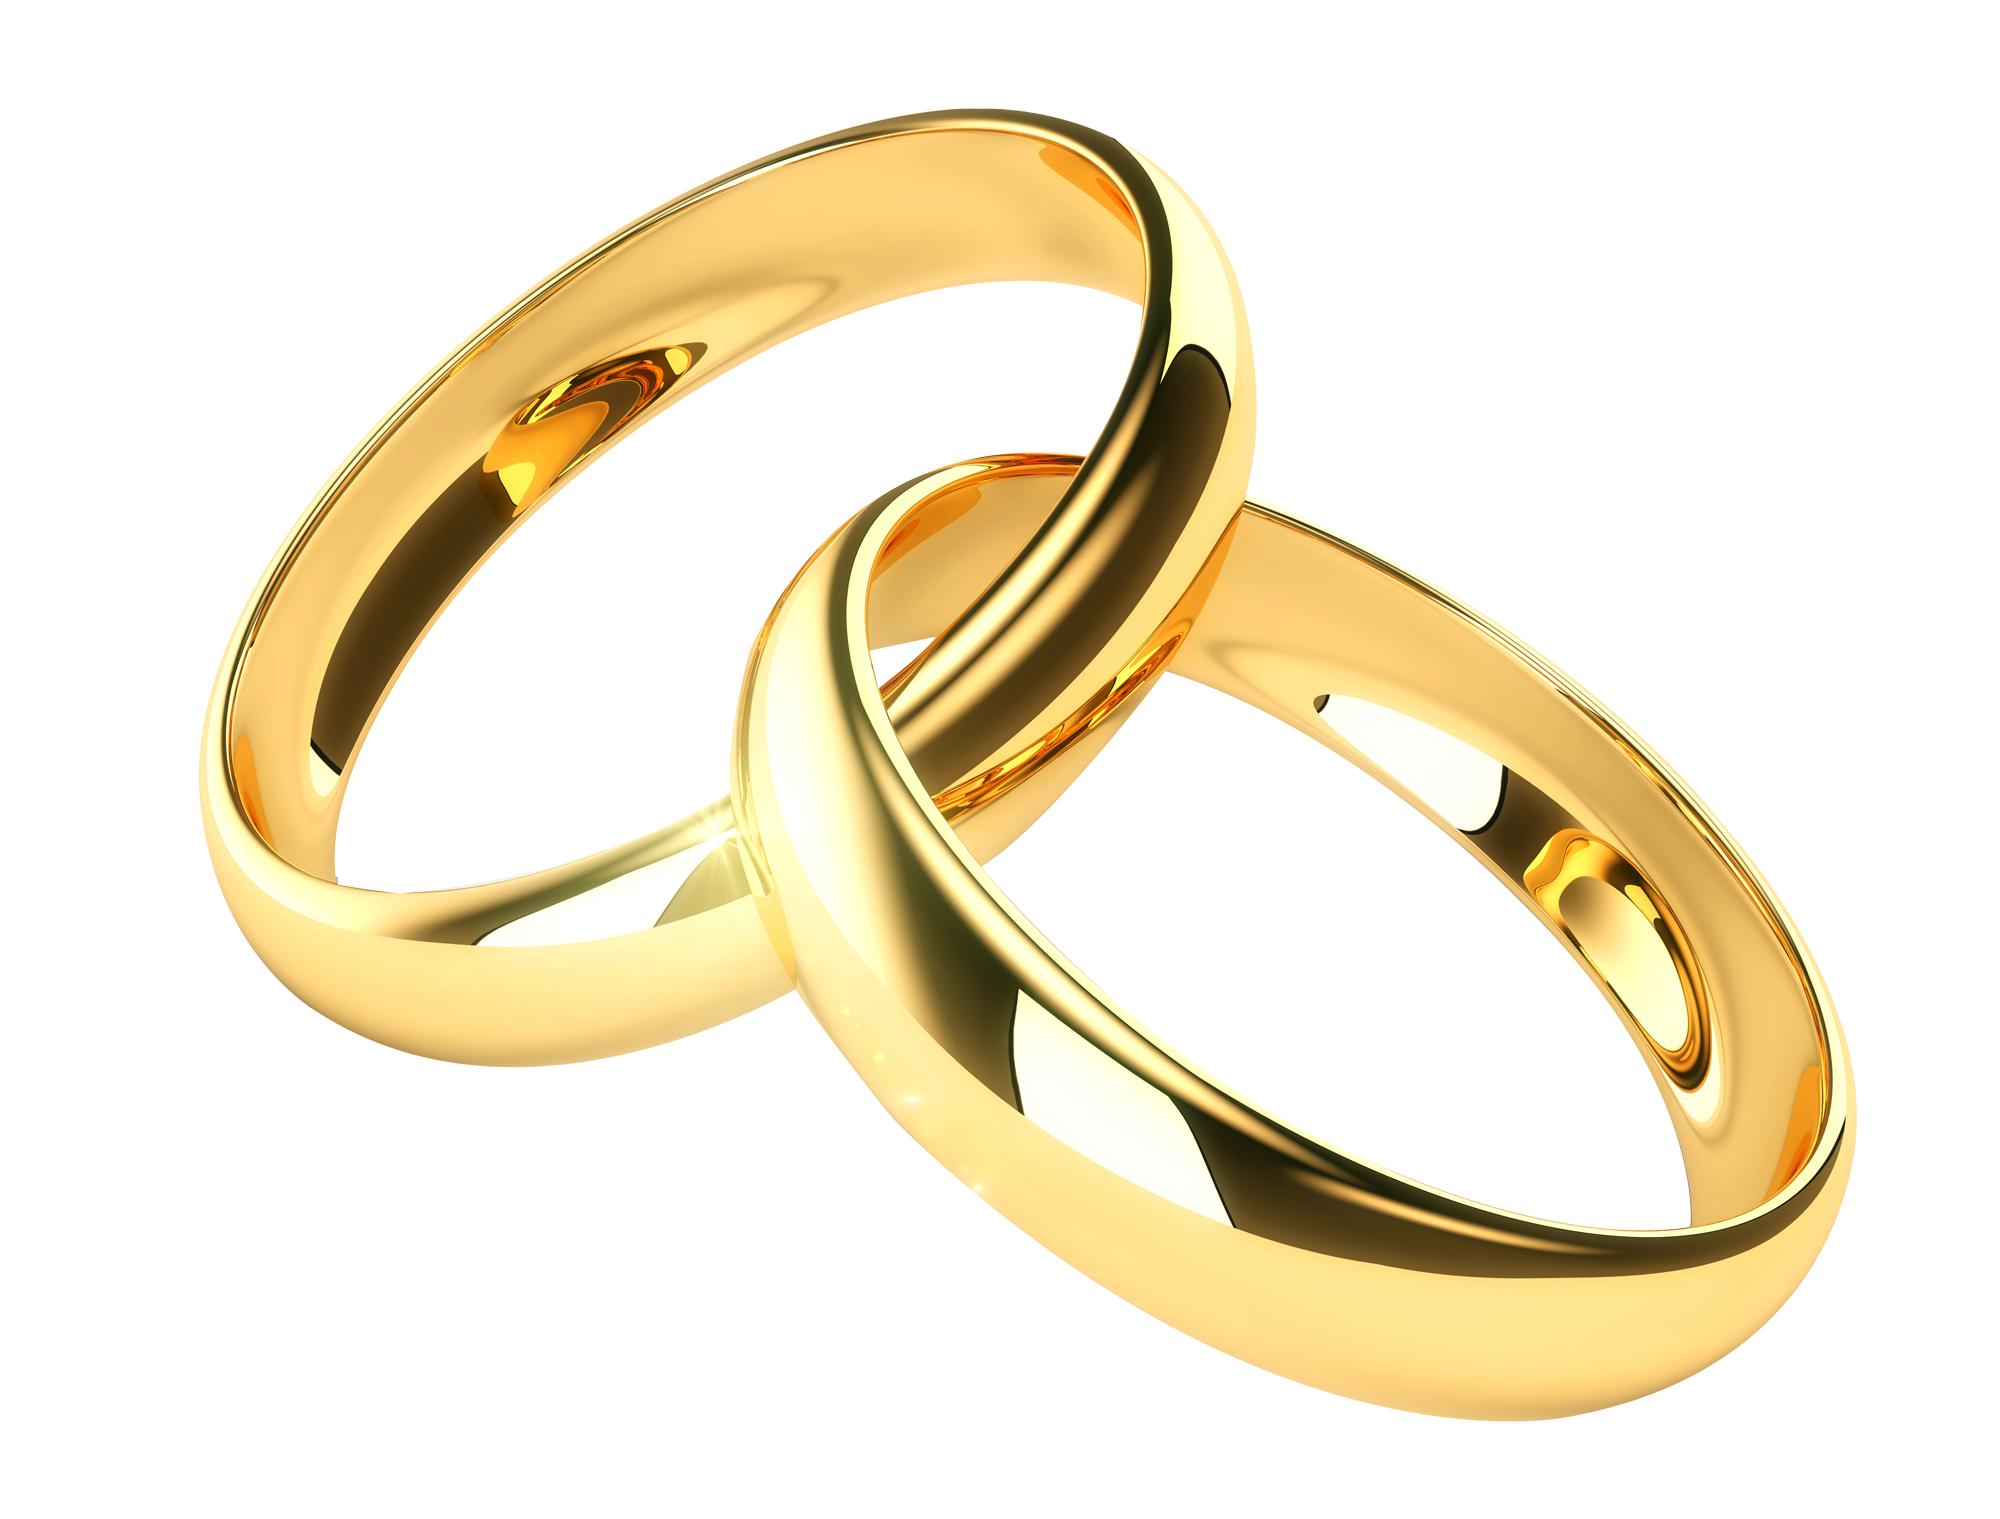 Wedding Ring Png.Png Rings Wedding Transparent Rings Wedding Png Images Pluspng